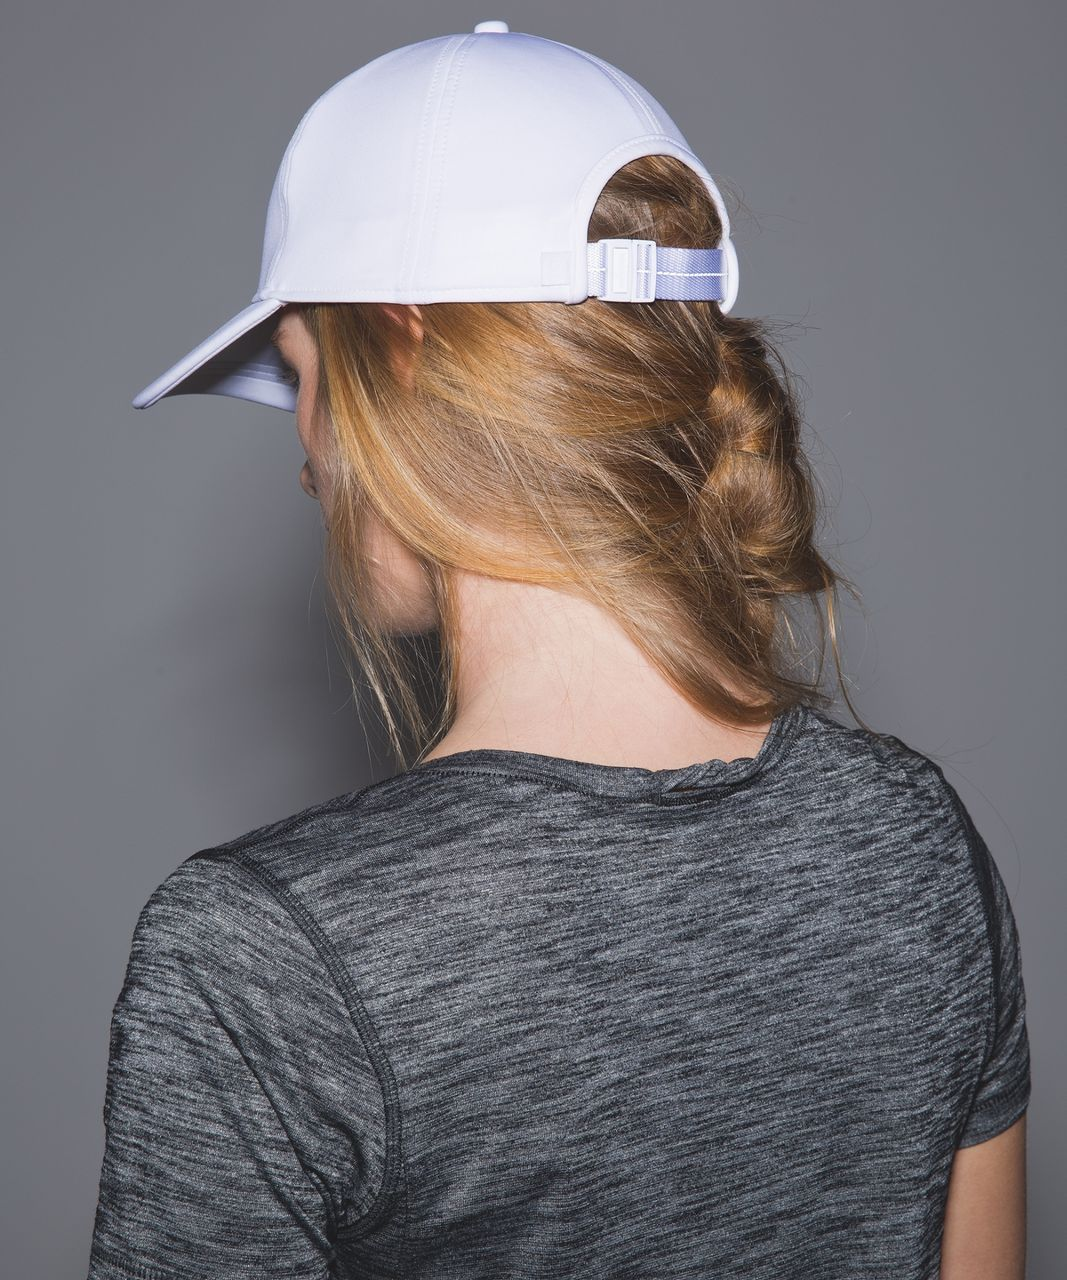 Lululemon Baller Hat - White / Blurry Belle Multi